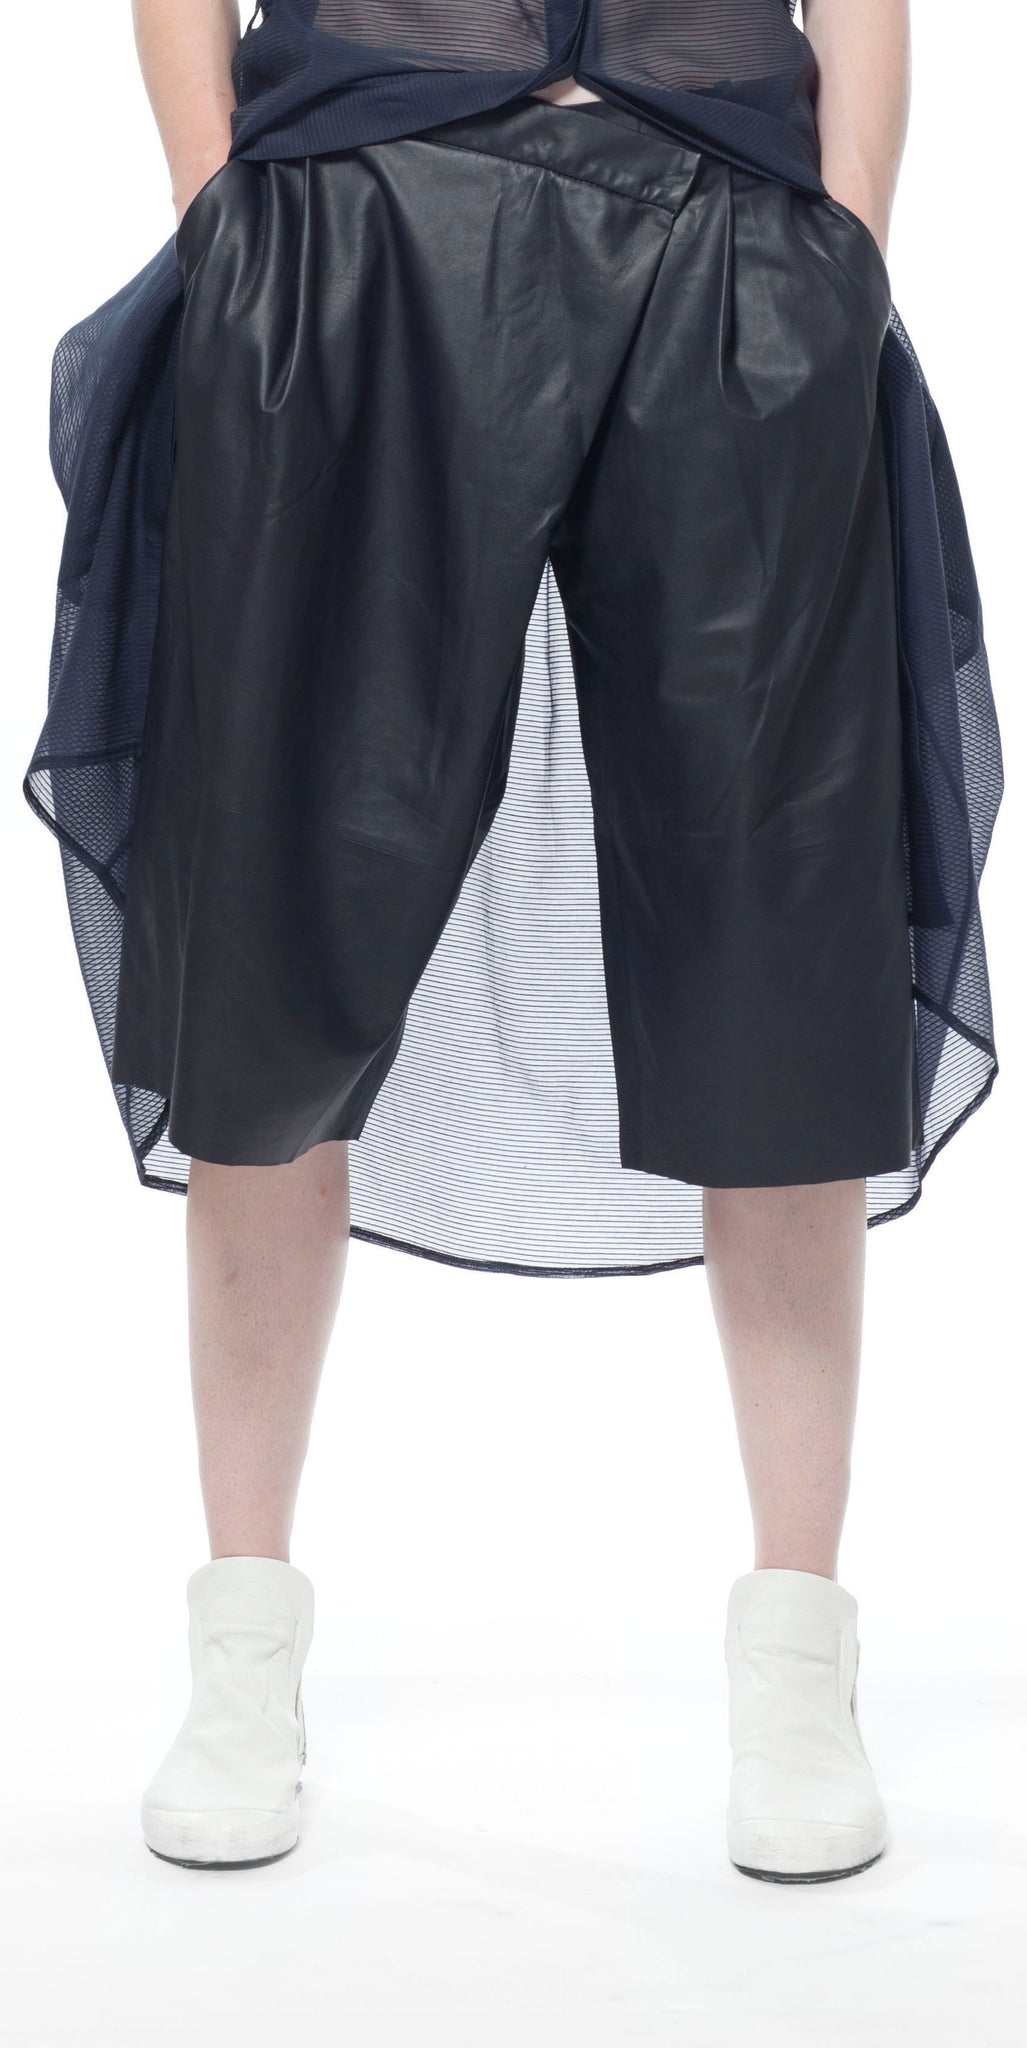 Geode Leather Long Shorts